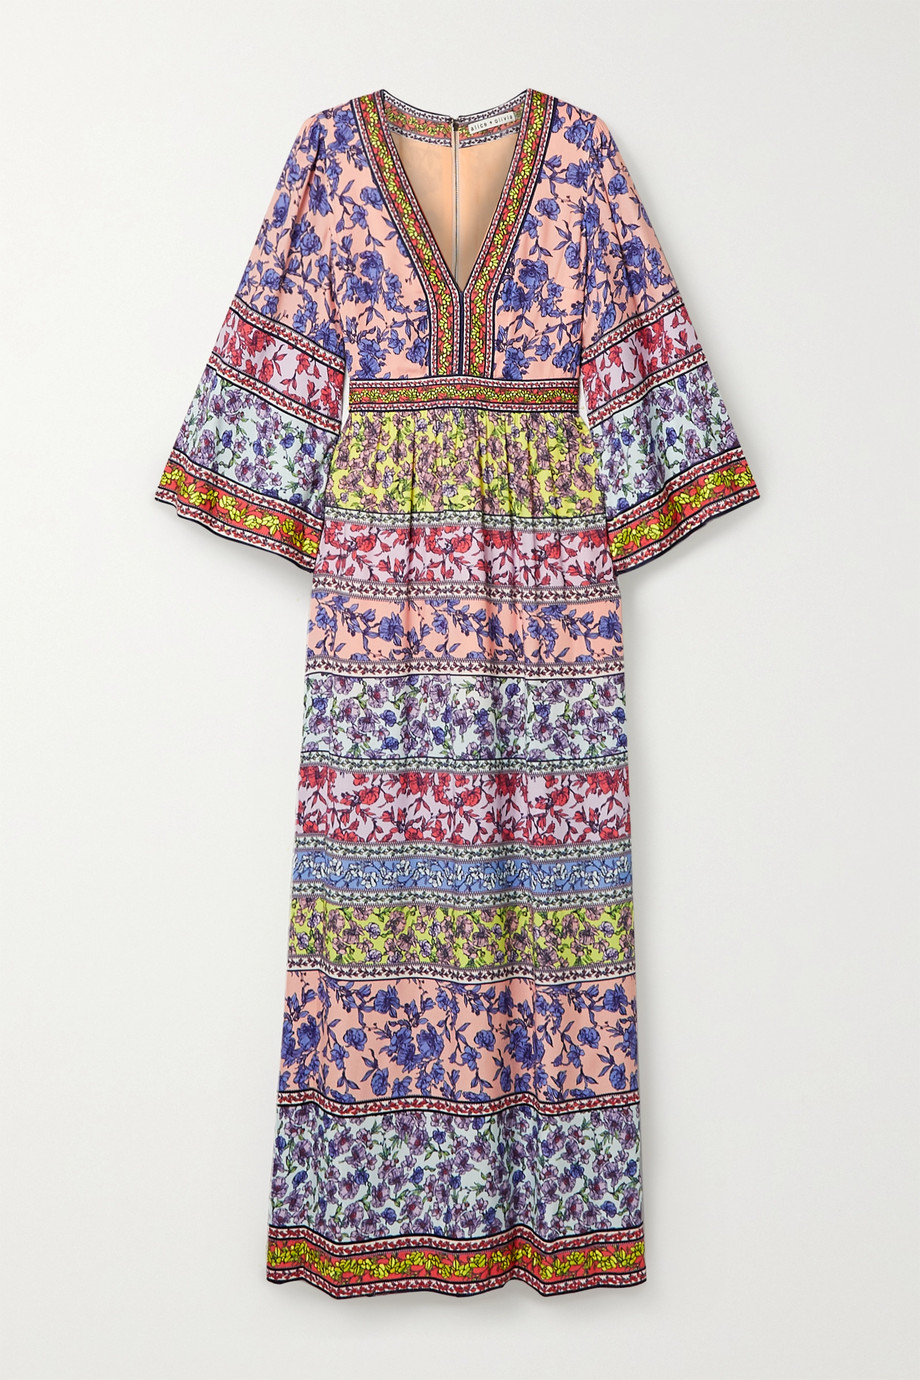 Alice + Olivia Lena embroidered floral-print crepe maxi dress